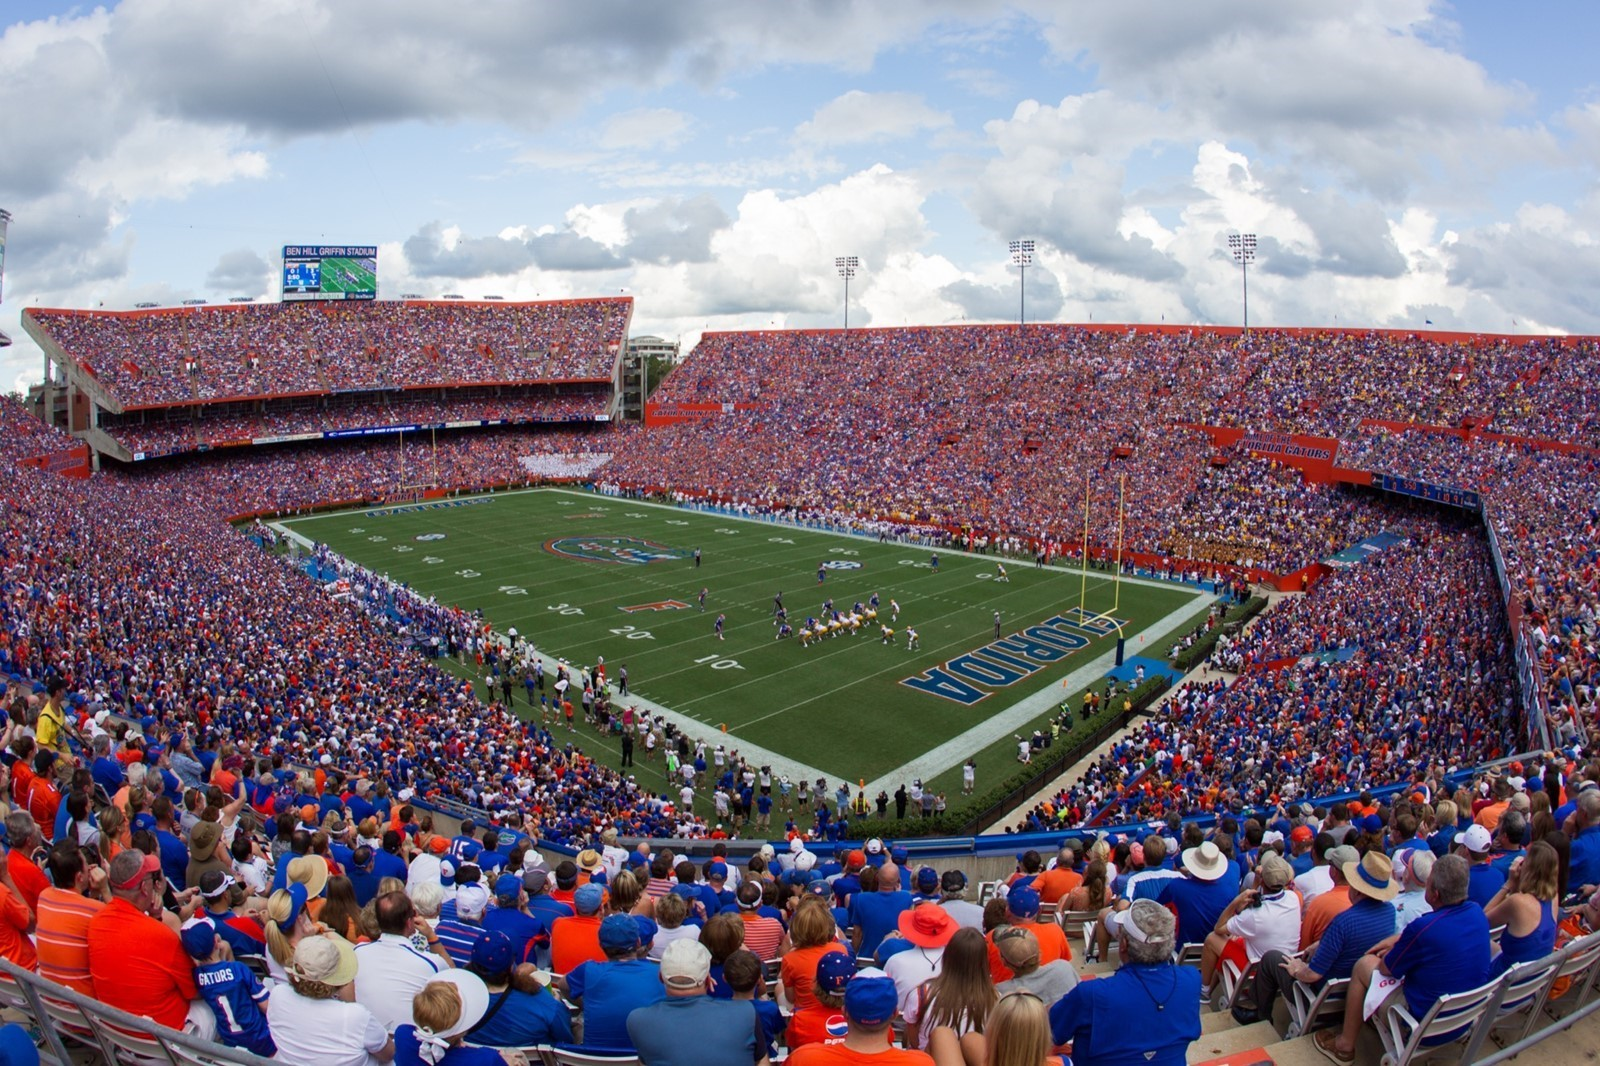 Florida Gators See a 76% Decrease in Texts Reported During their Busiest Game